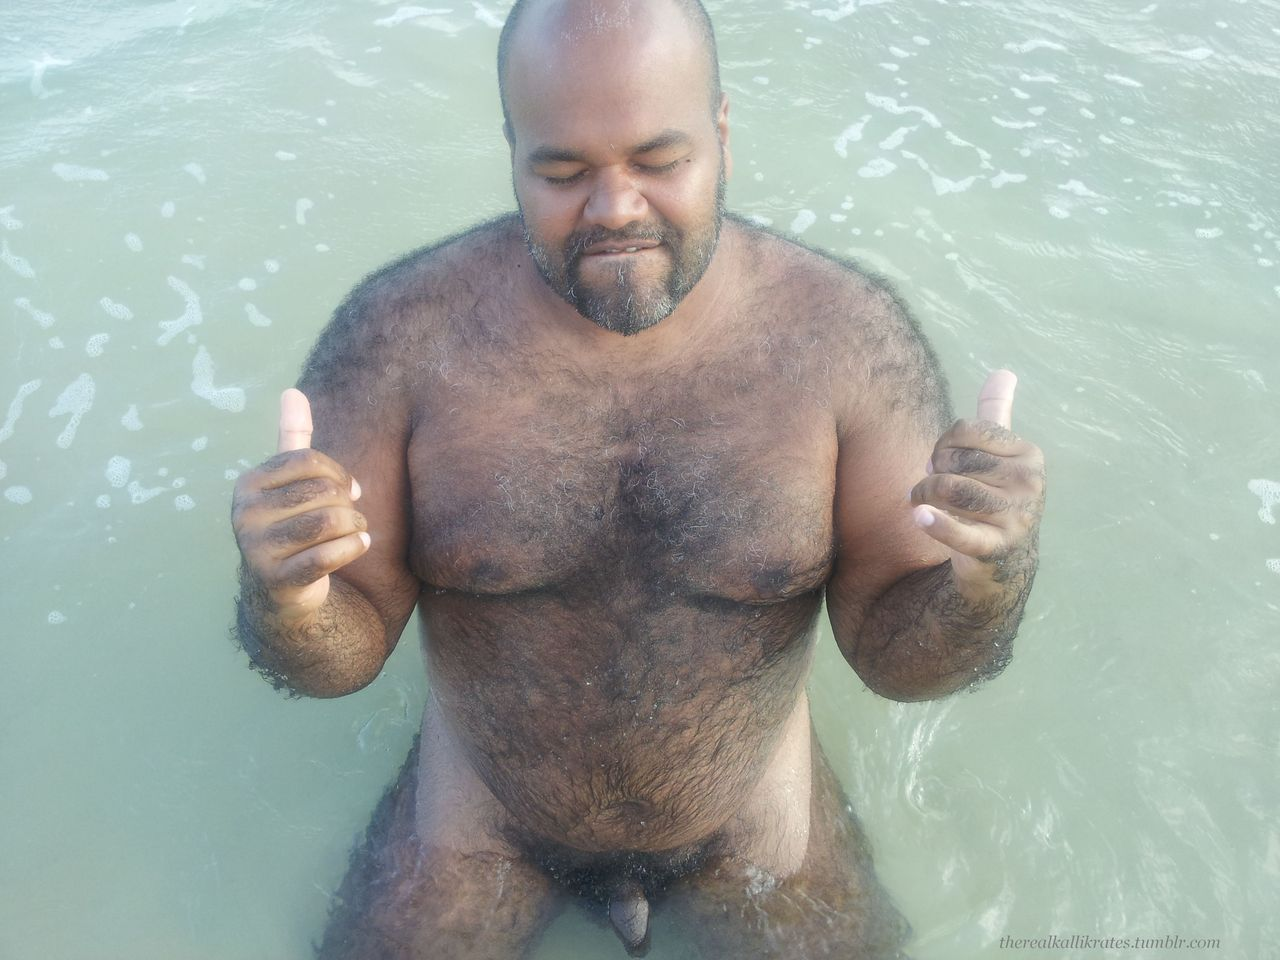 hairy chubby - chub - fat black